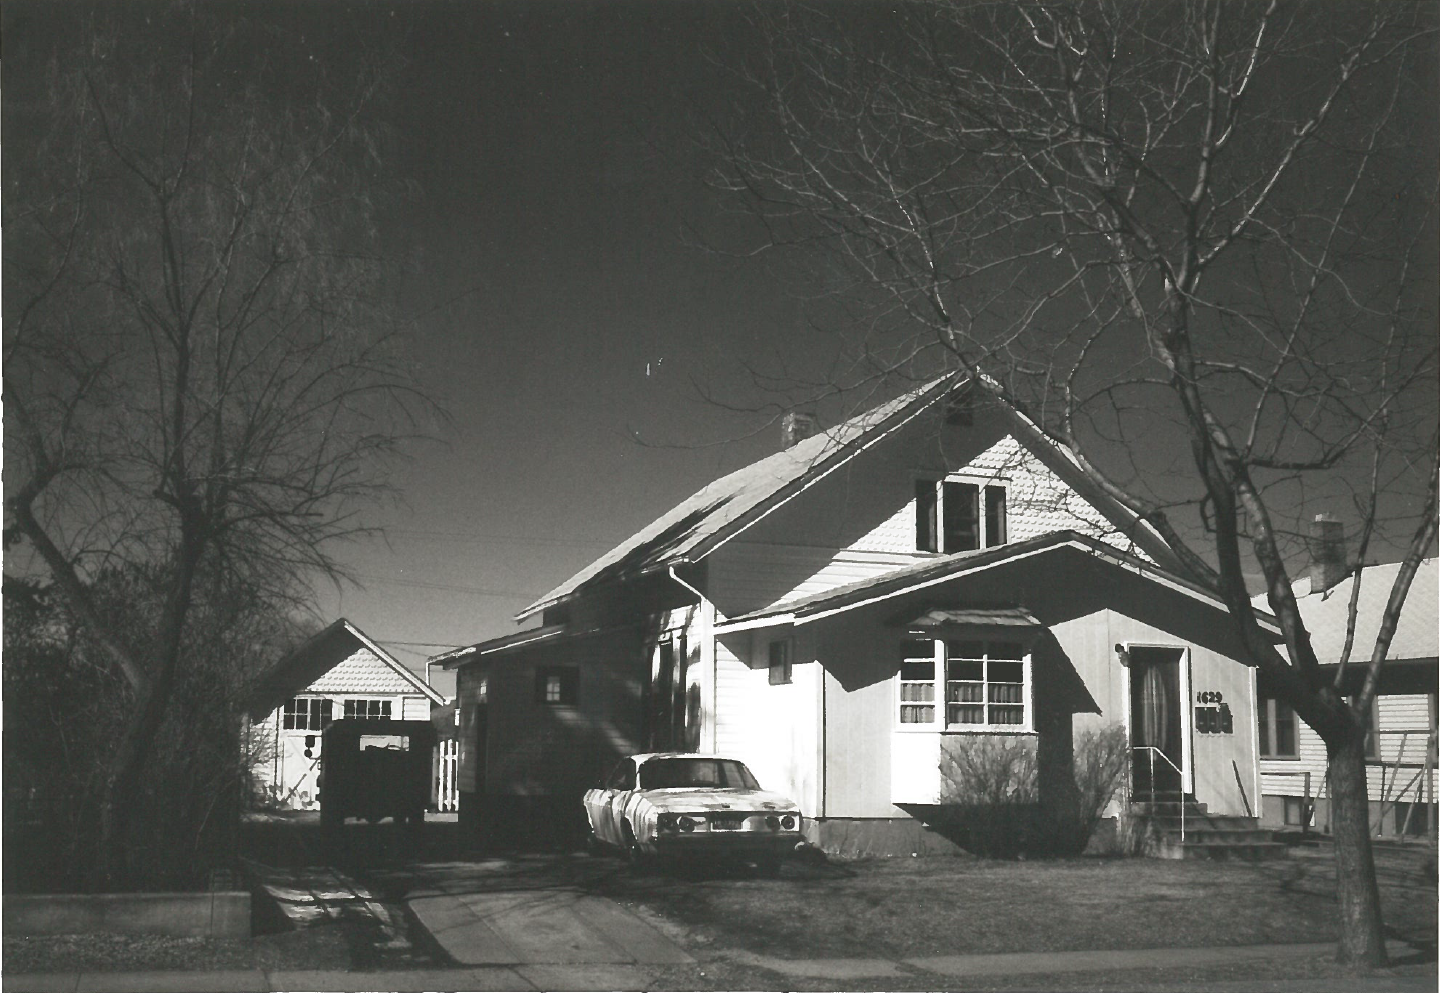 McMillan House, 1978, by Vicki Sandstead